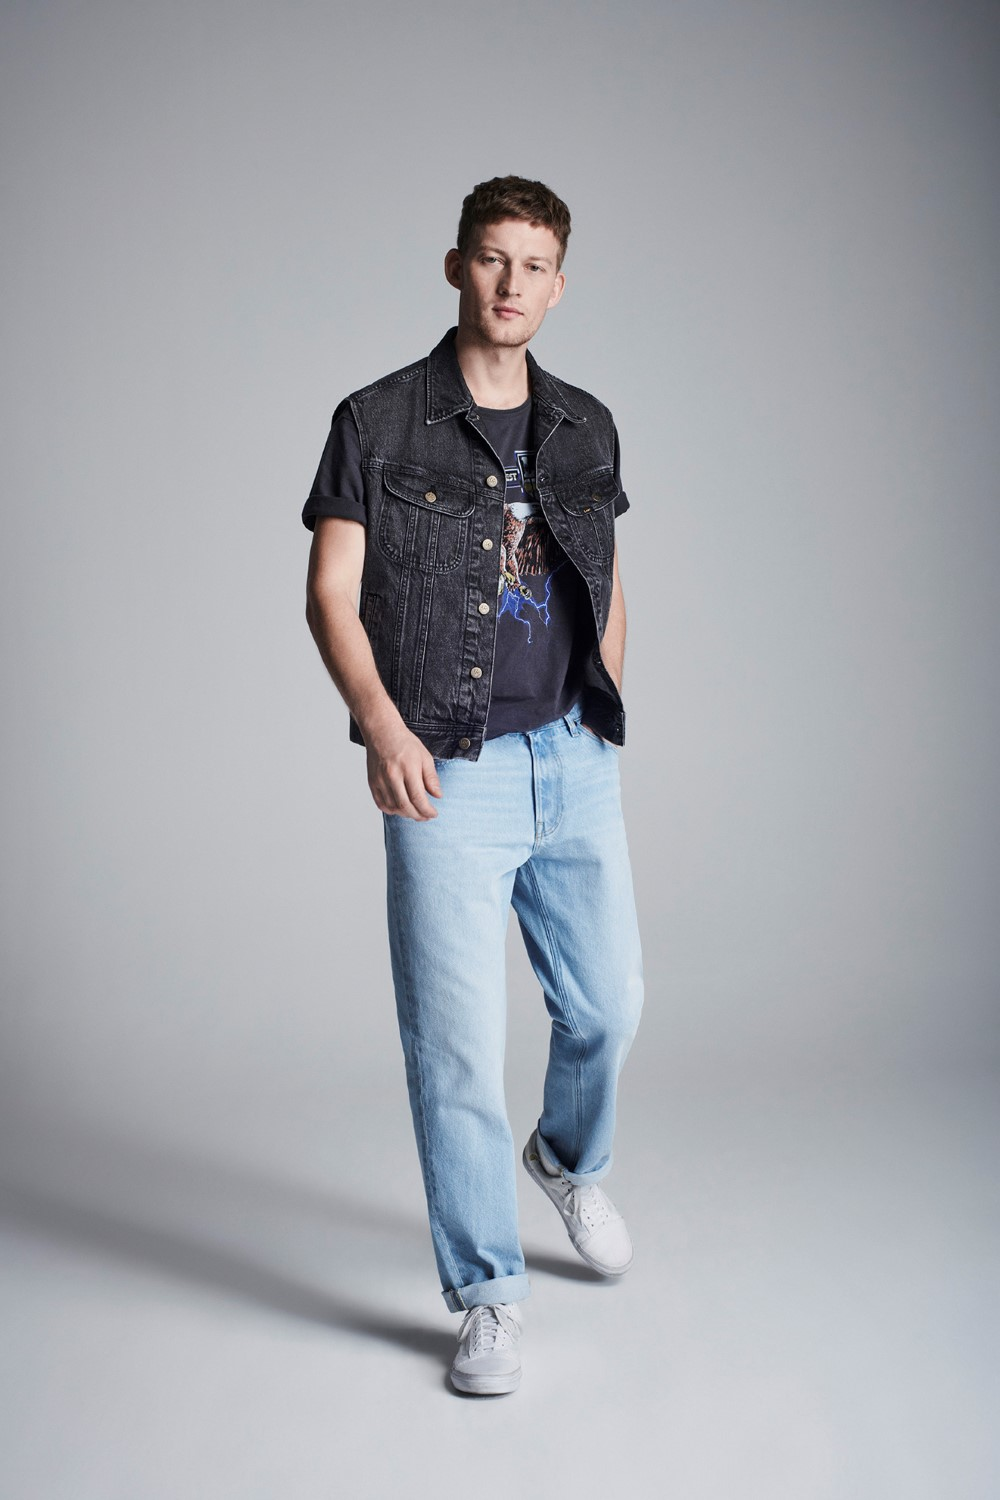 Lee Jeans Collection Fall Preview 2020